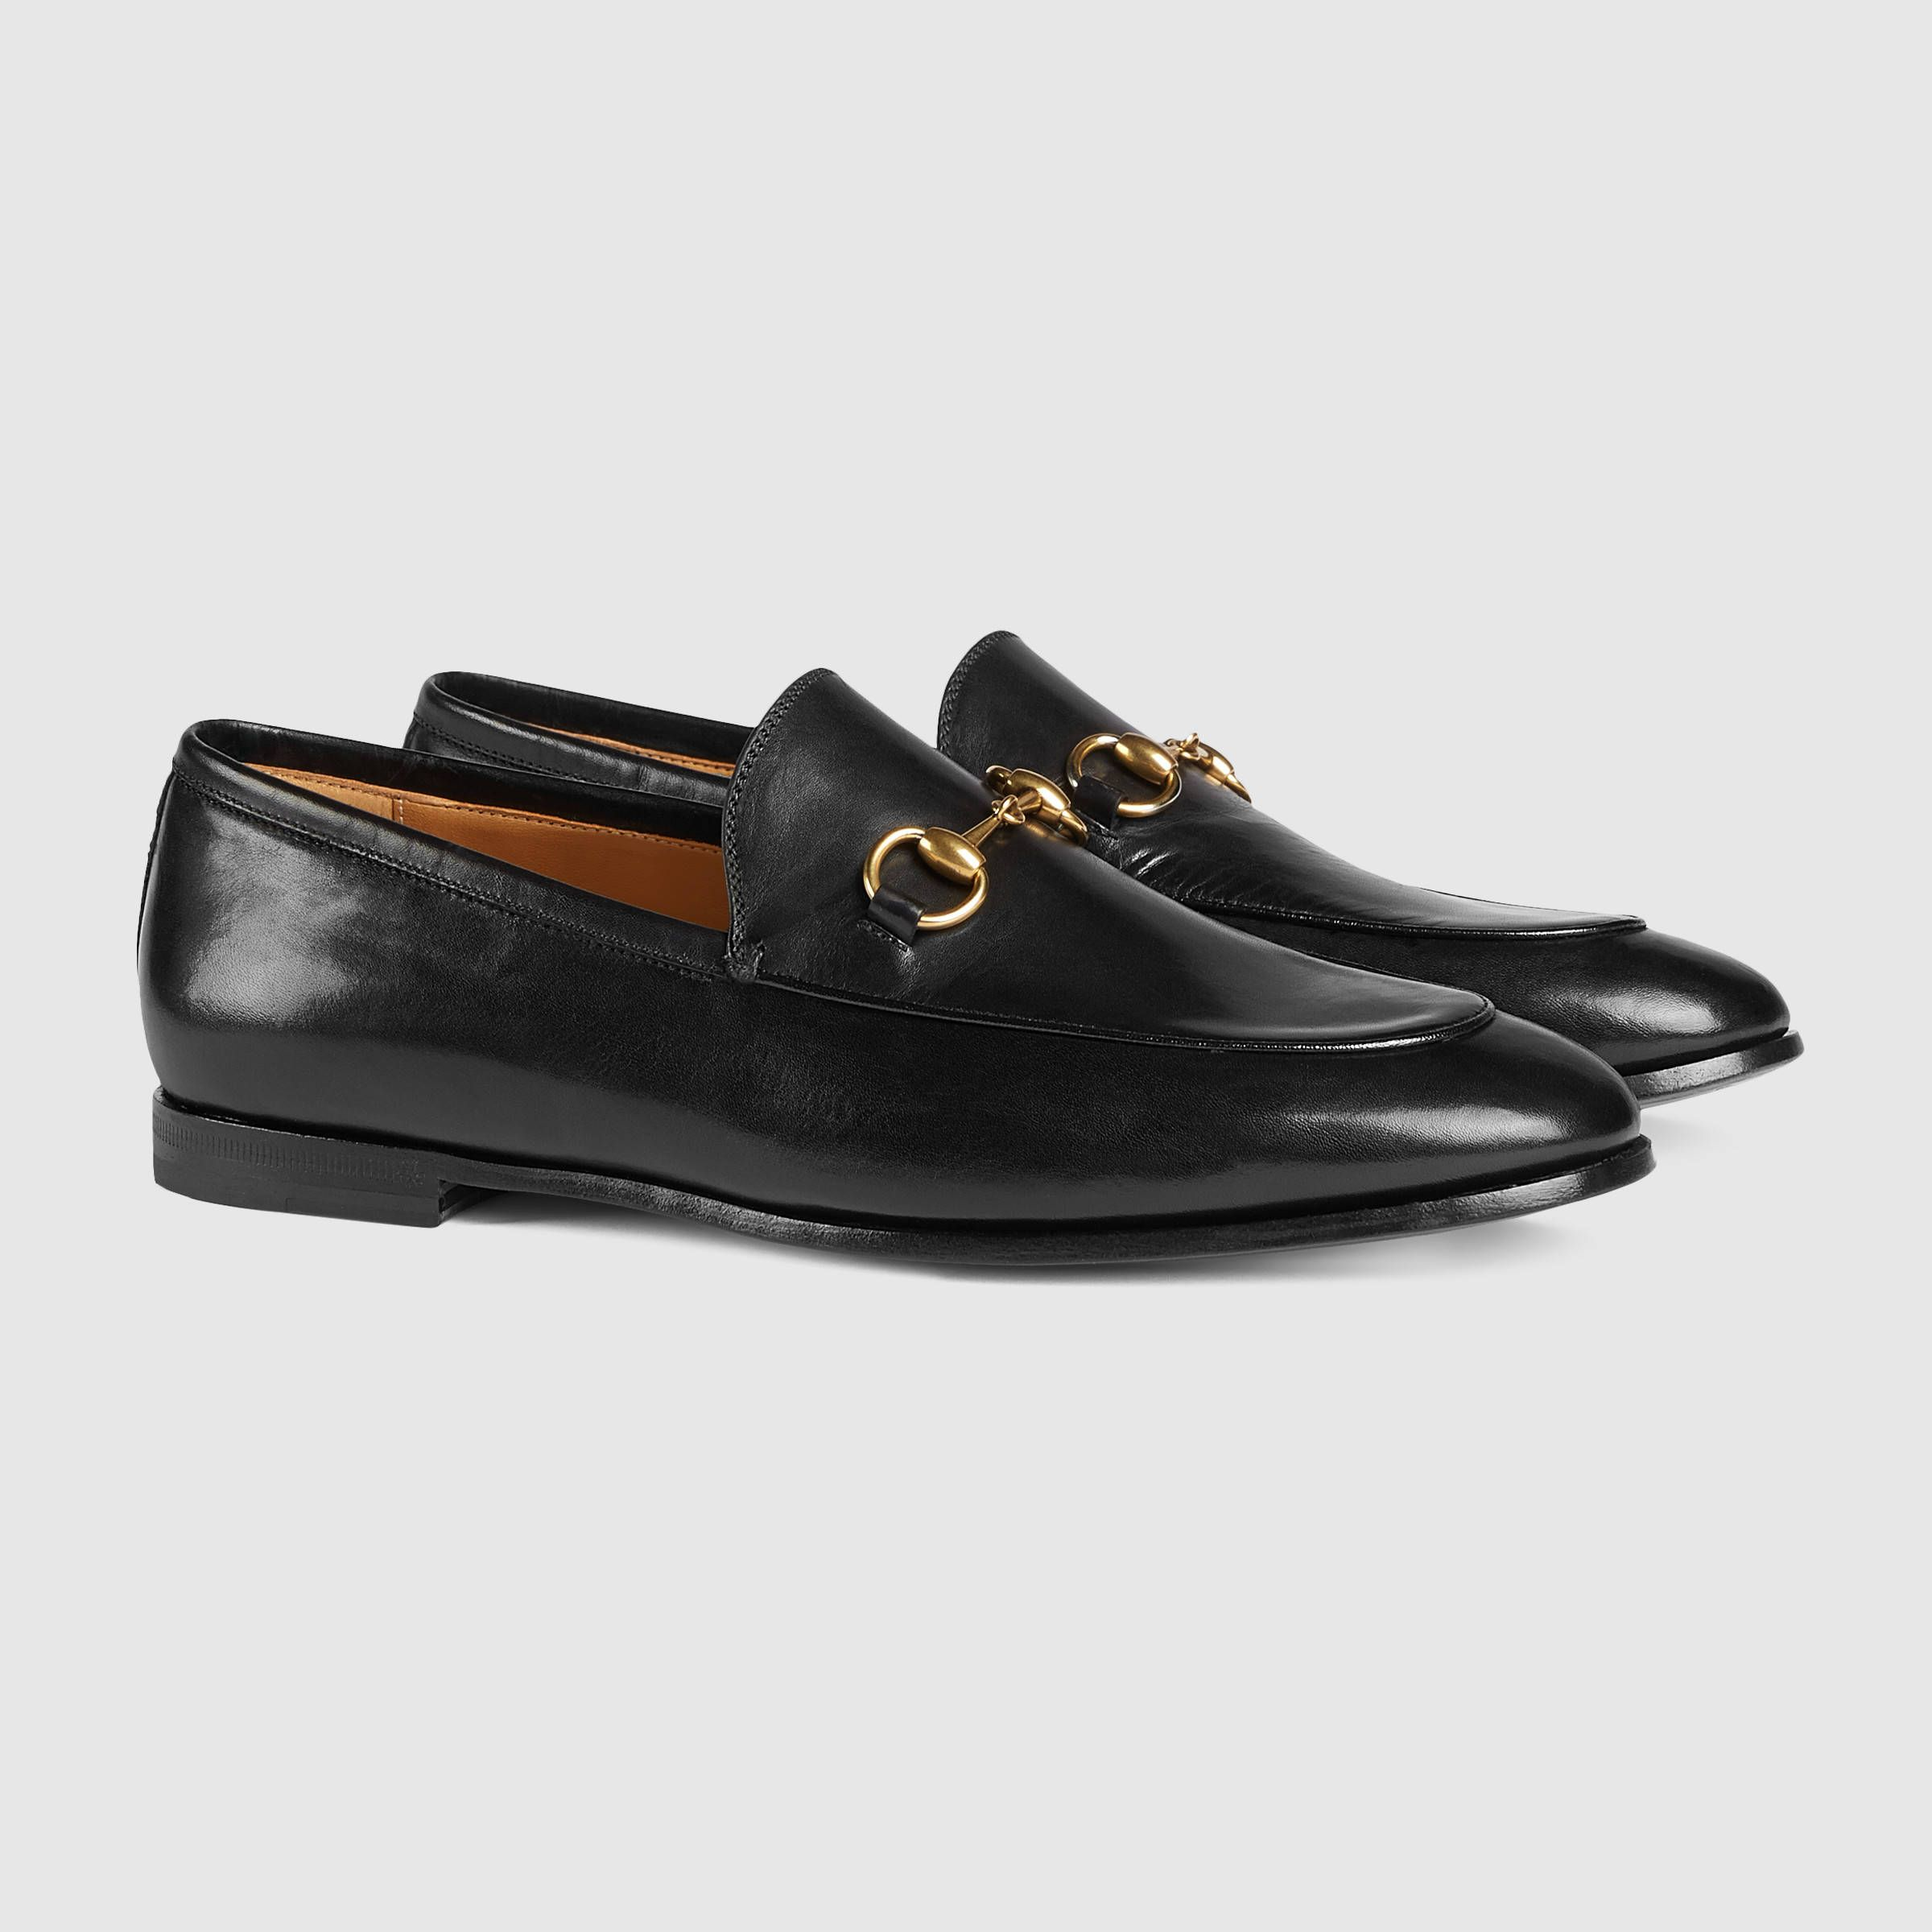 9acad43c6 Gucci Jordaan leather loafer | ***GUCCI FASHION*** | Gucci loafers ...